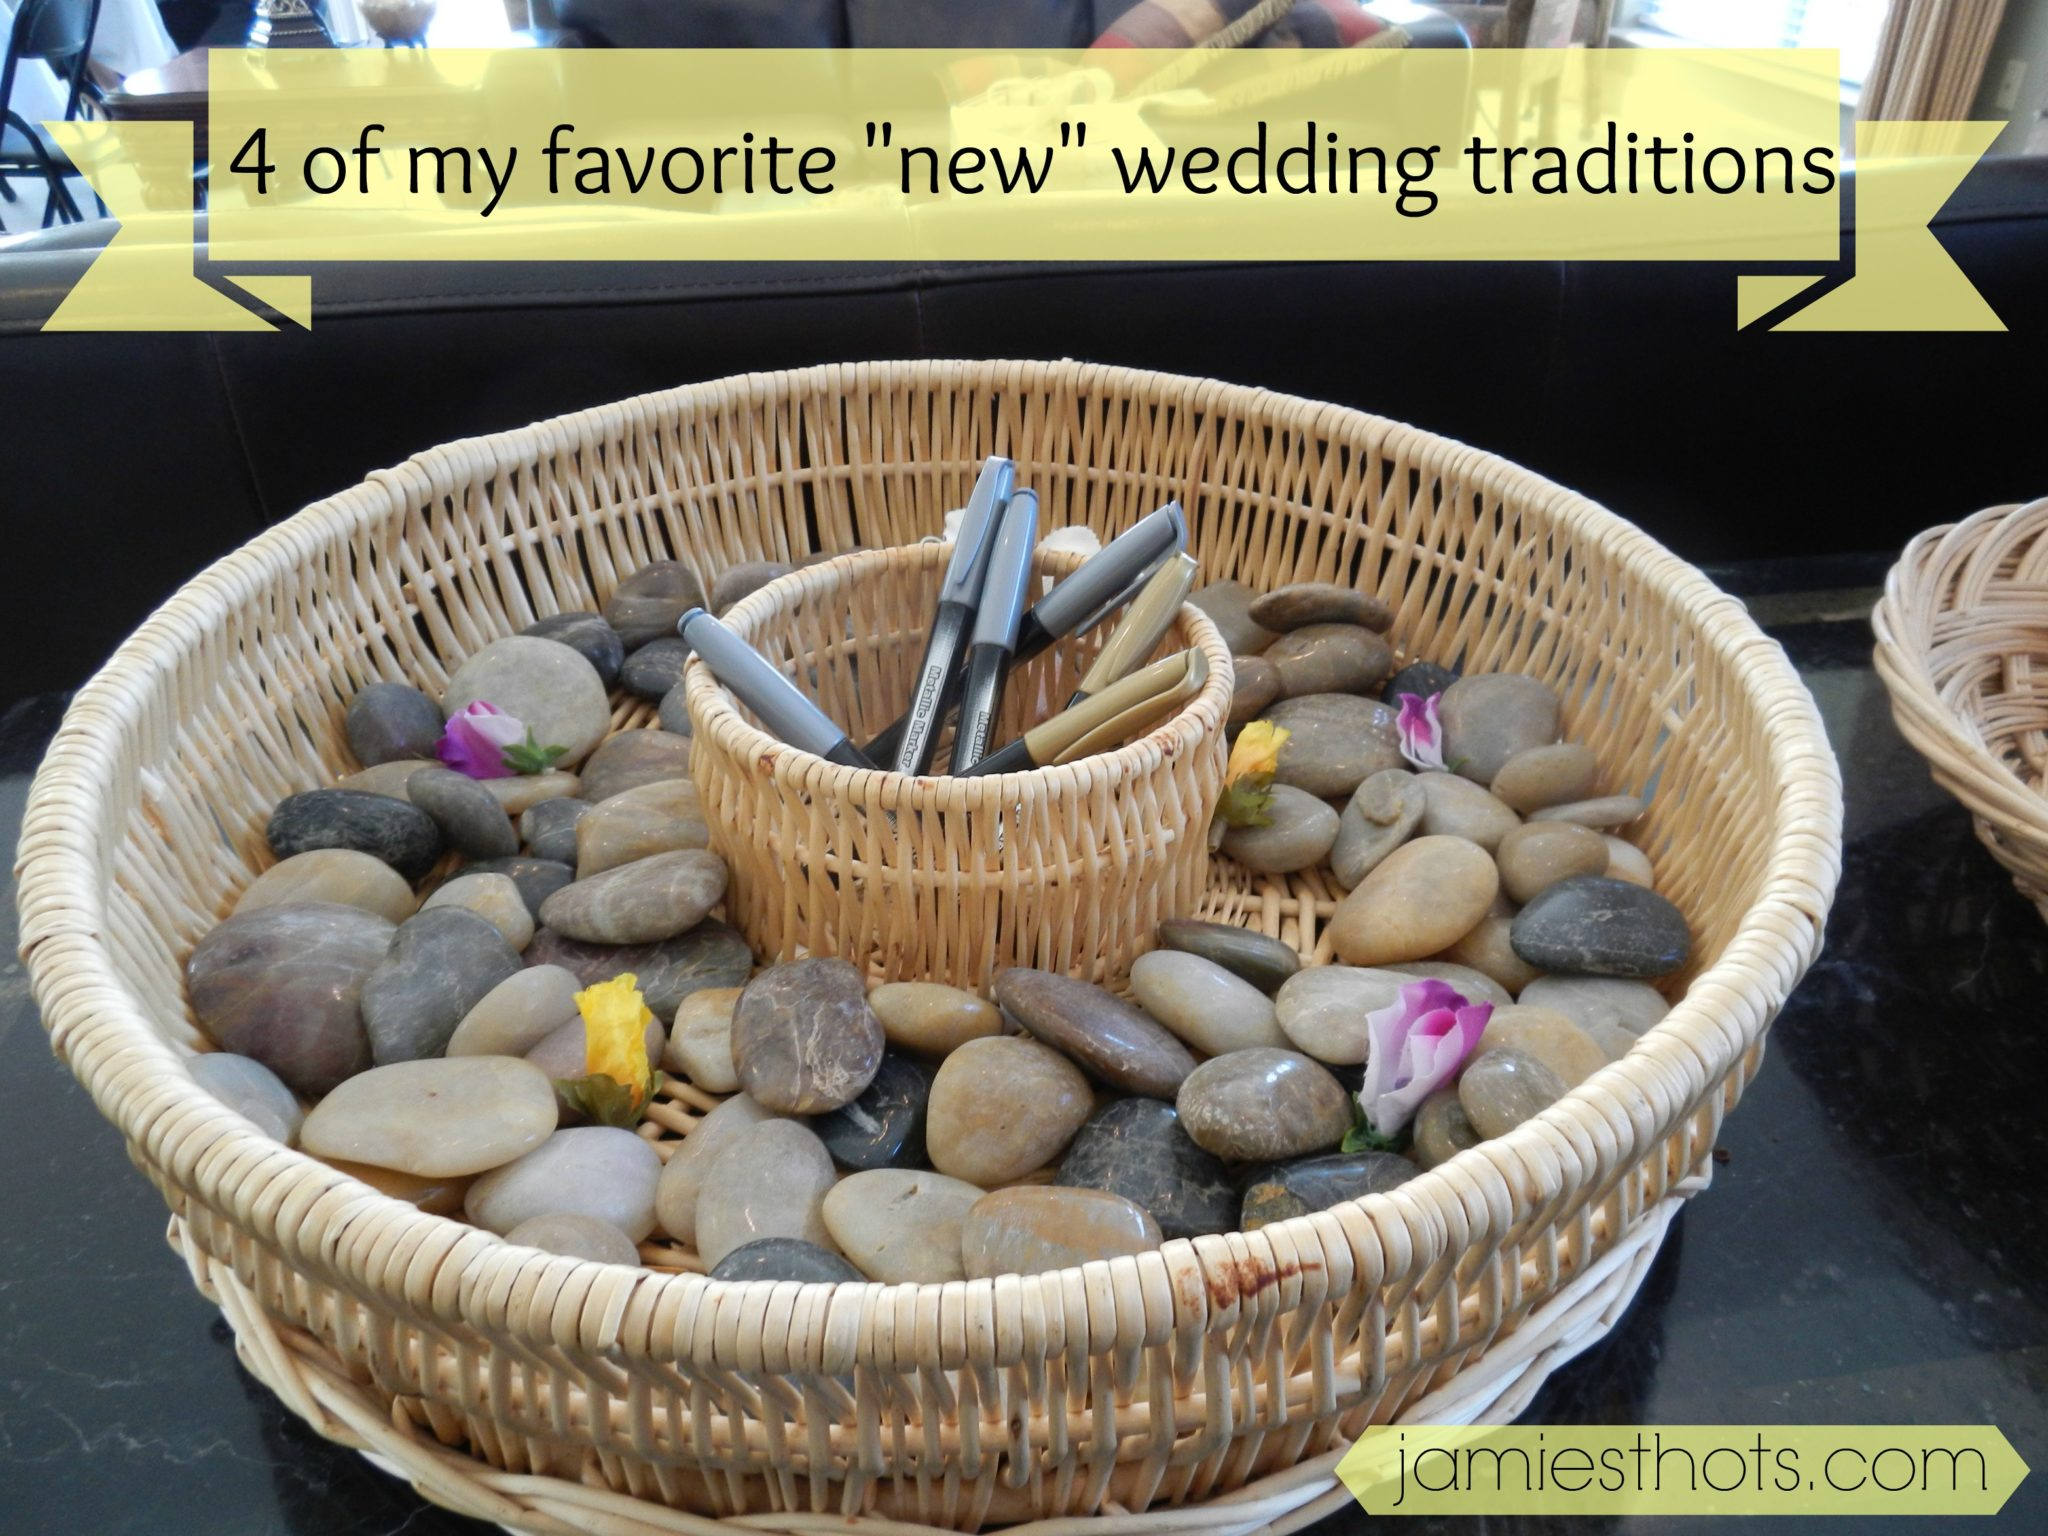 Four new wedding tradition ideas that I love